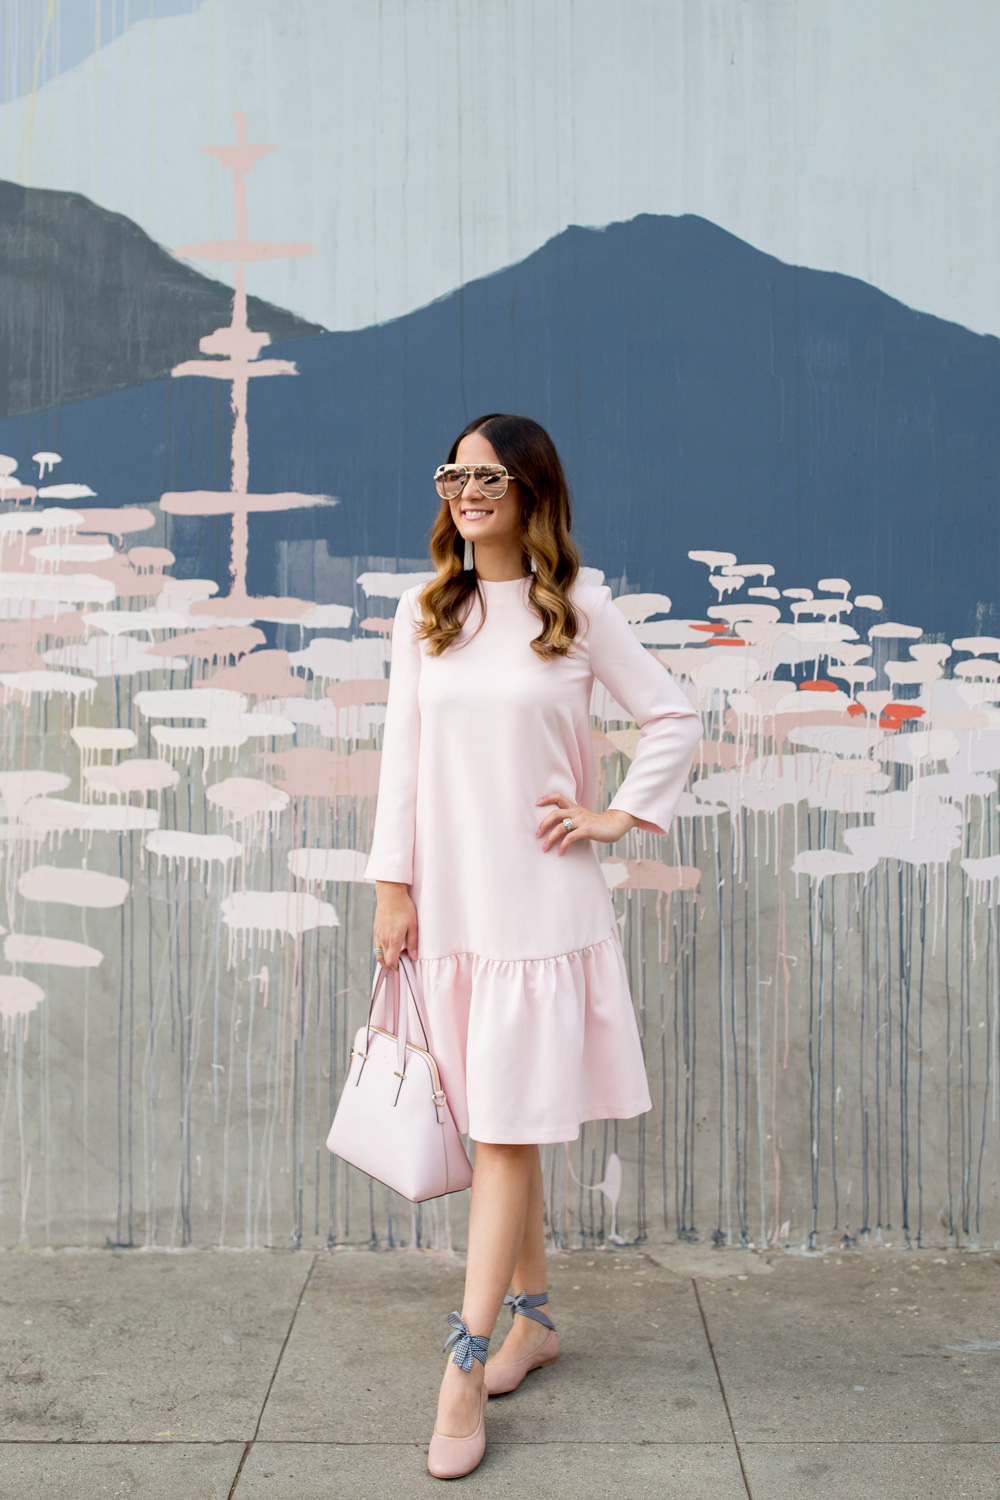 Jennifer Lake Style Charade in a pink Edit Easy Dress from Shopbop, Steve Madden Meow tie up flats, a pink Kate Spade Maise bag at Los Angeles Kim West mural street art